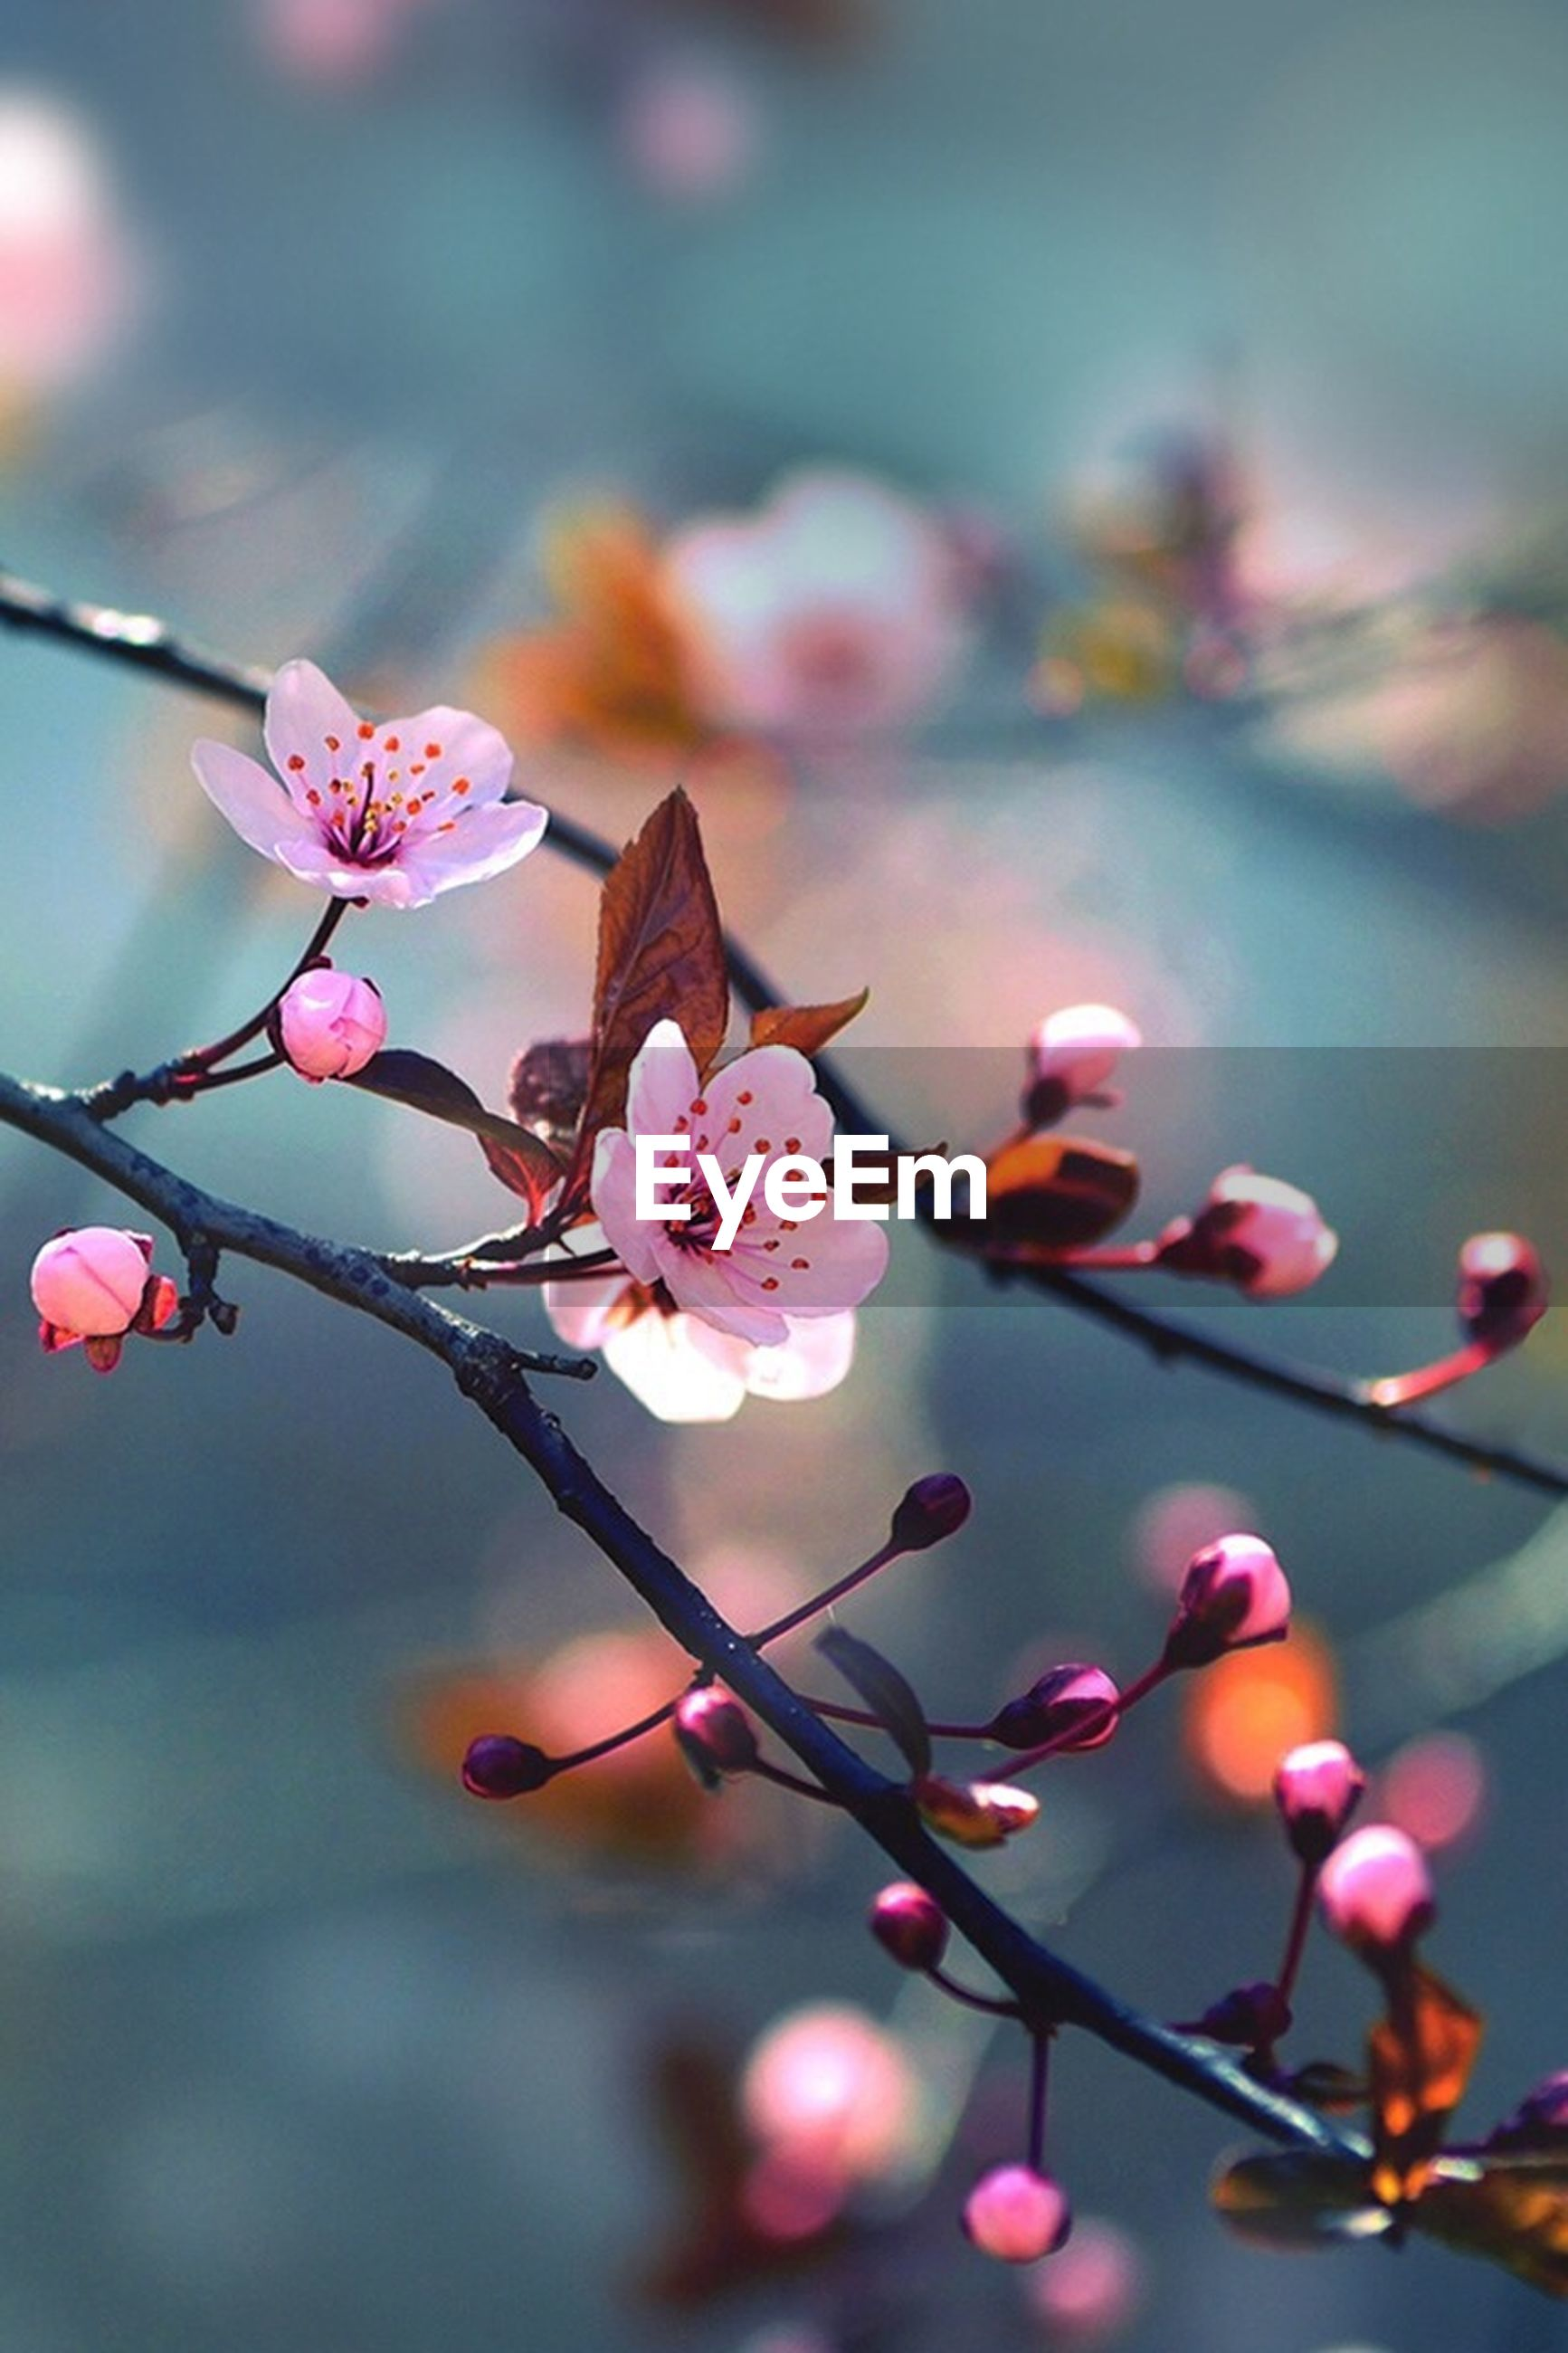 flower, freshness, fragility, focus on foreground, growth, petal, close-up, beauty in nature, twig, branch, nature, flower head, blooming, blossom, bud, selective focus, in bloom, stem, pink color, plant